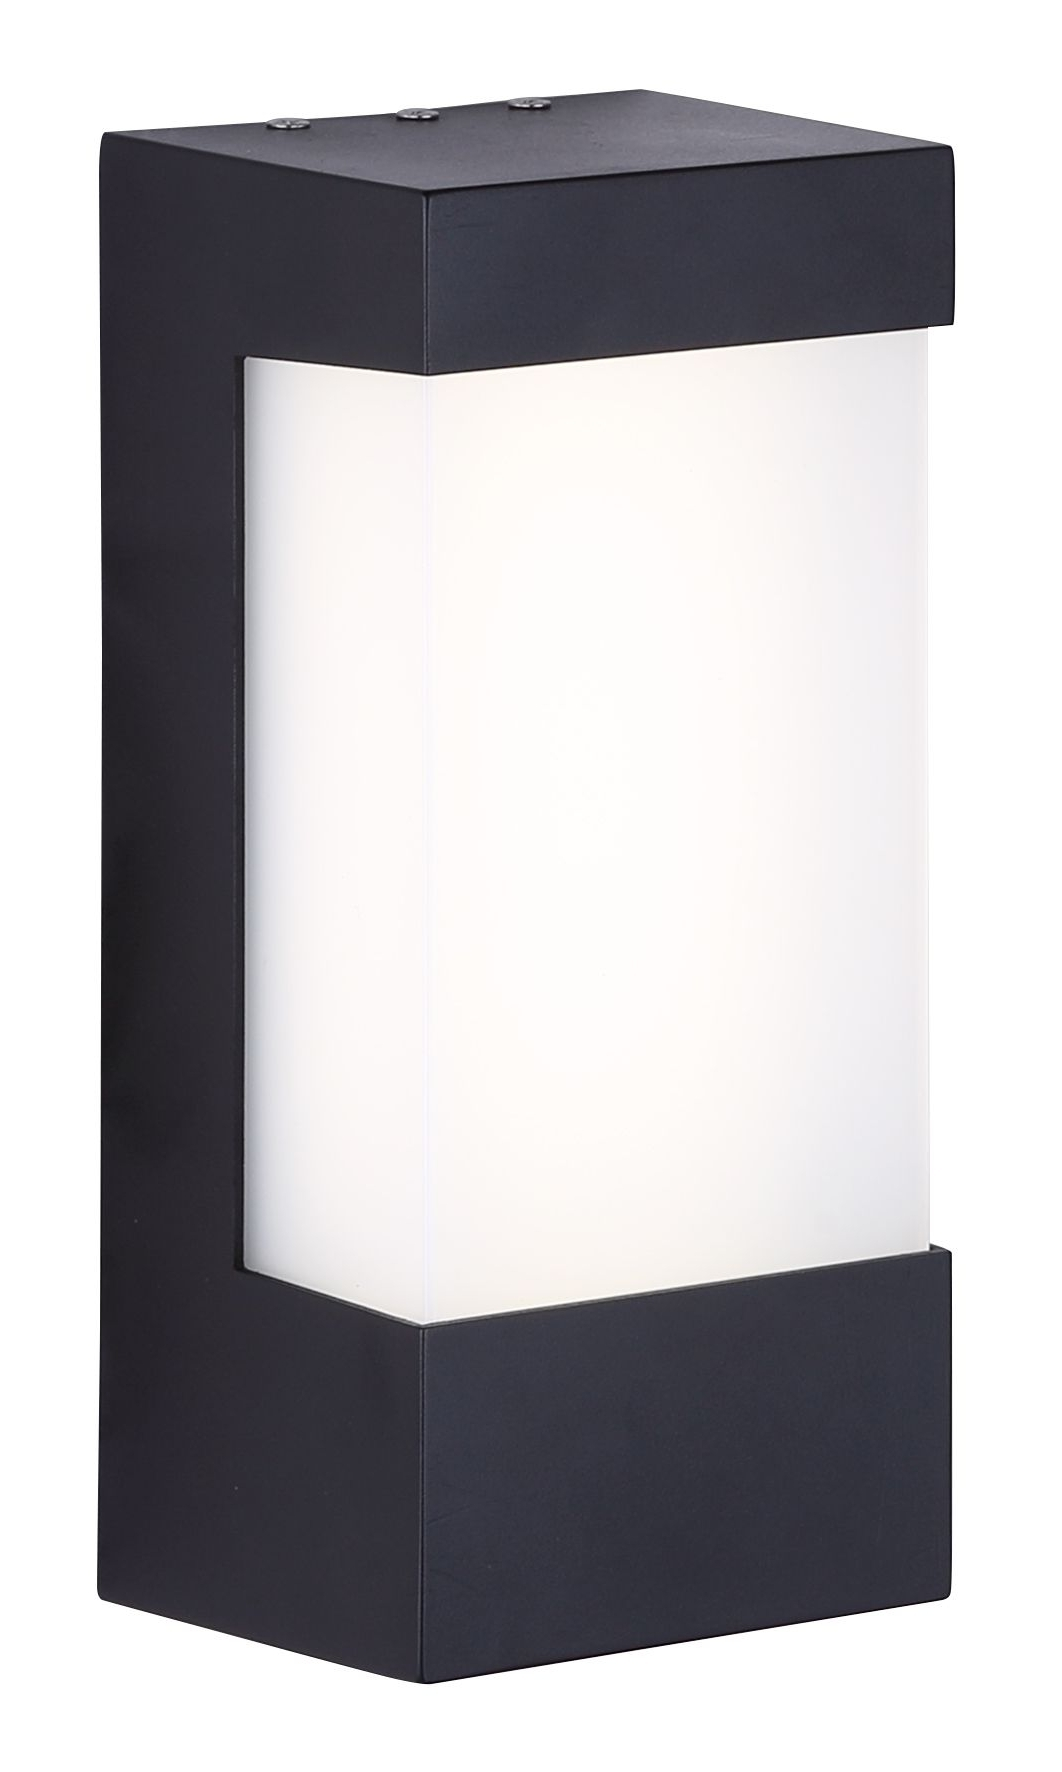 Led Outdoor Plastic Outdoor Wall Light Brwl Sq6W N Bk (View 6 of 20)